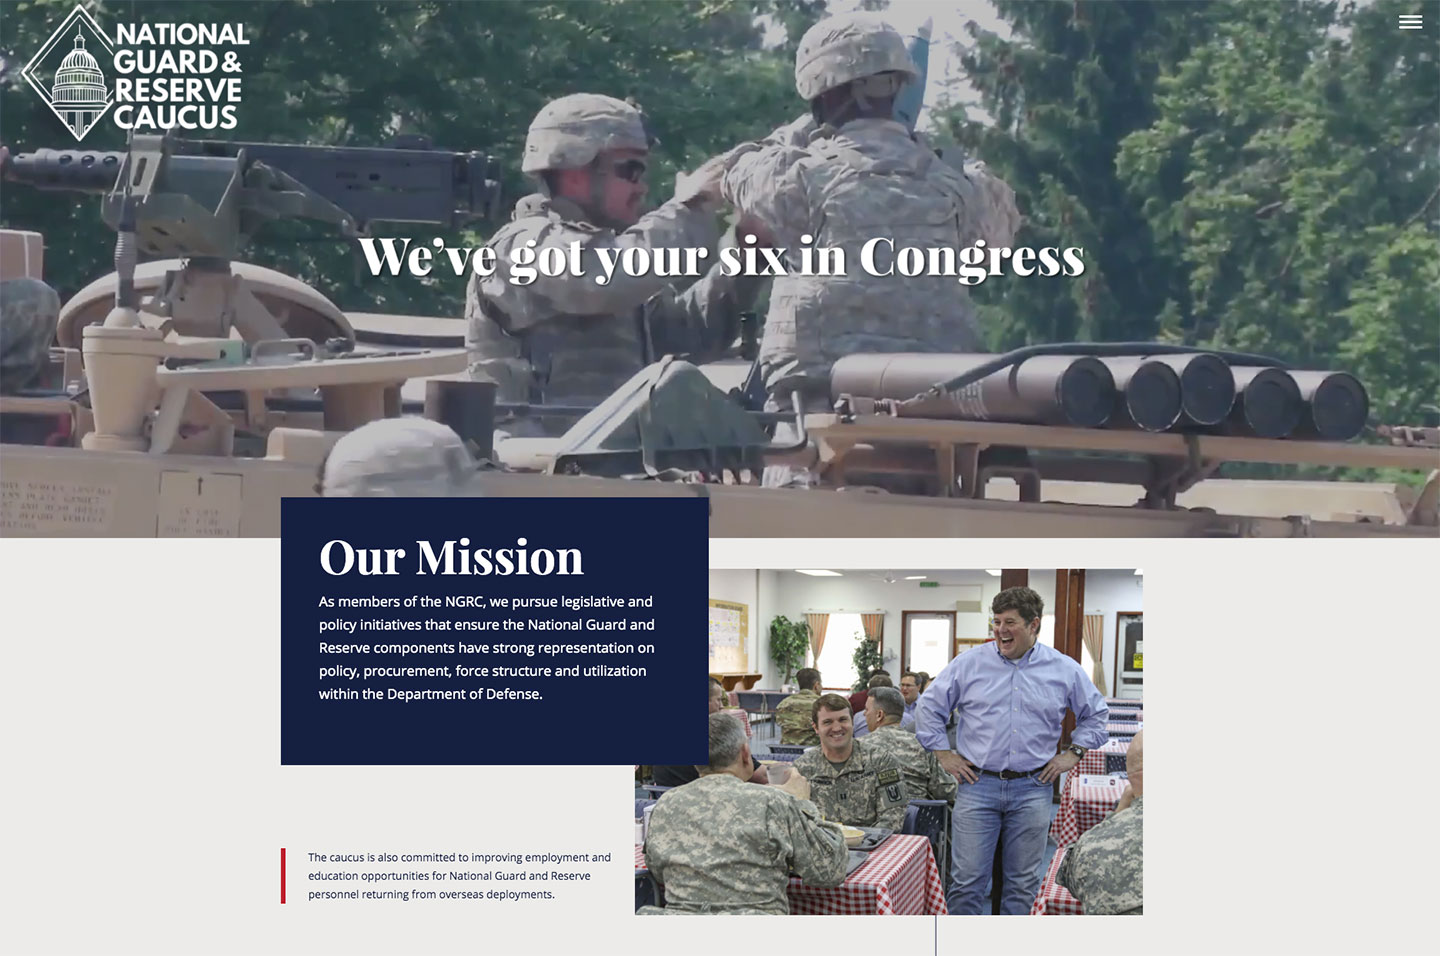 National Guard & Reserve Caucus<small>Mission Statement</small>